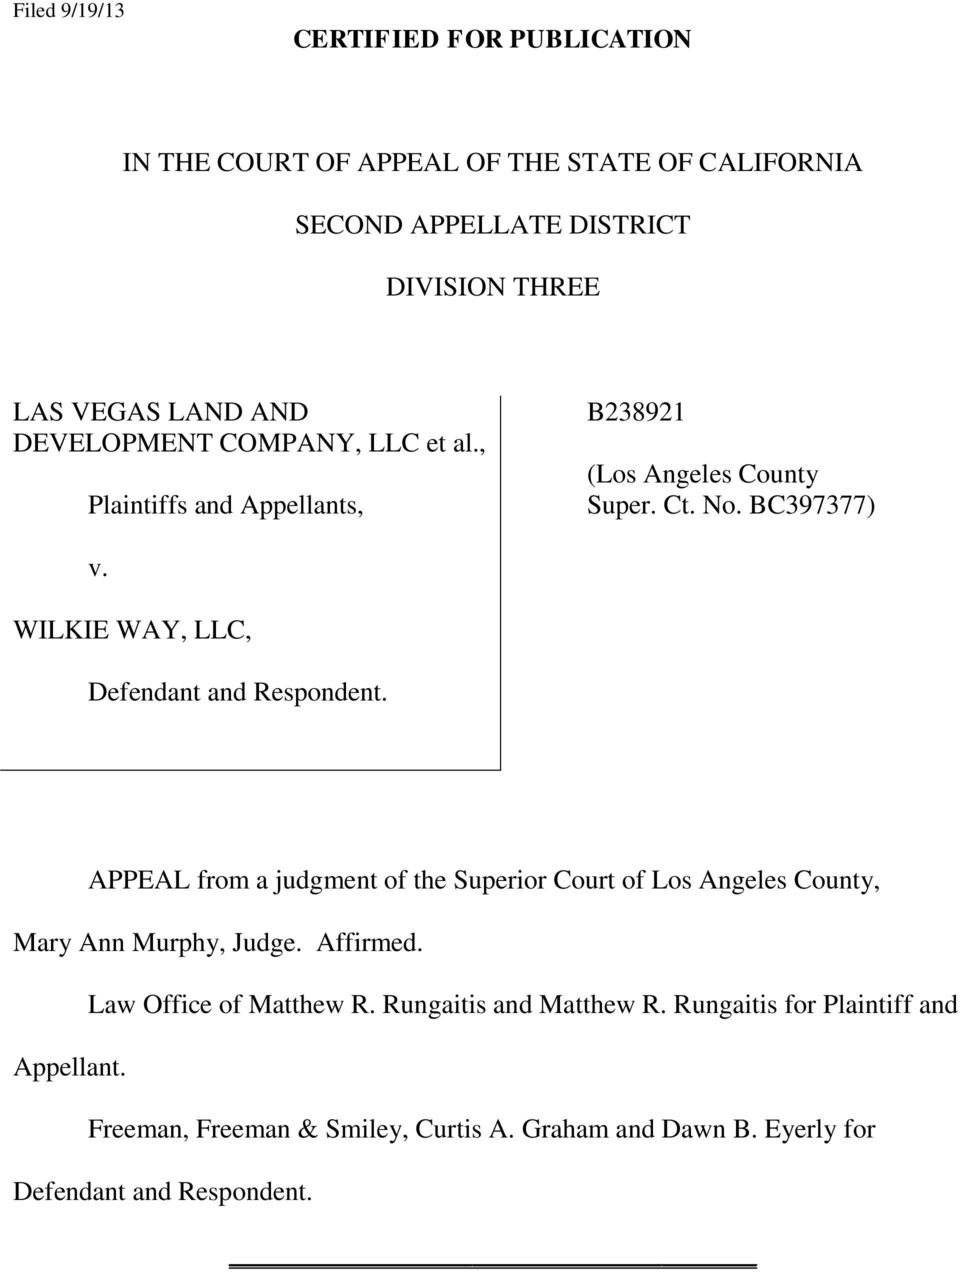 WILKIE WAY, LLC, Defendant and Respondent. APPEAL from a judgment of the Superior Court of Los Angeles County, Mary Ann Murphy, Judge. Affirmed.